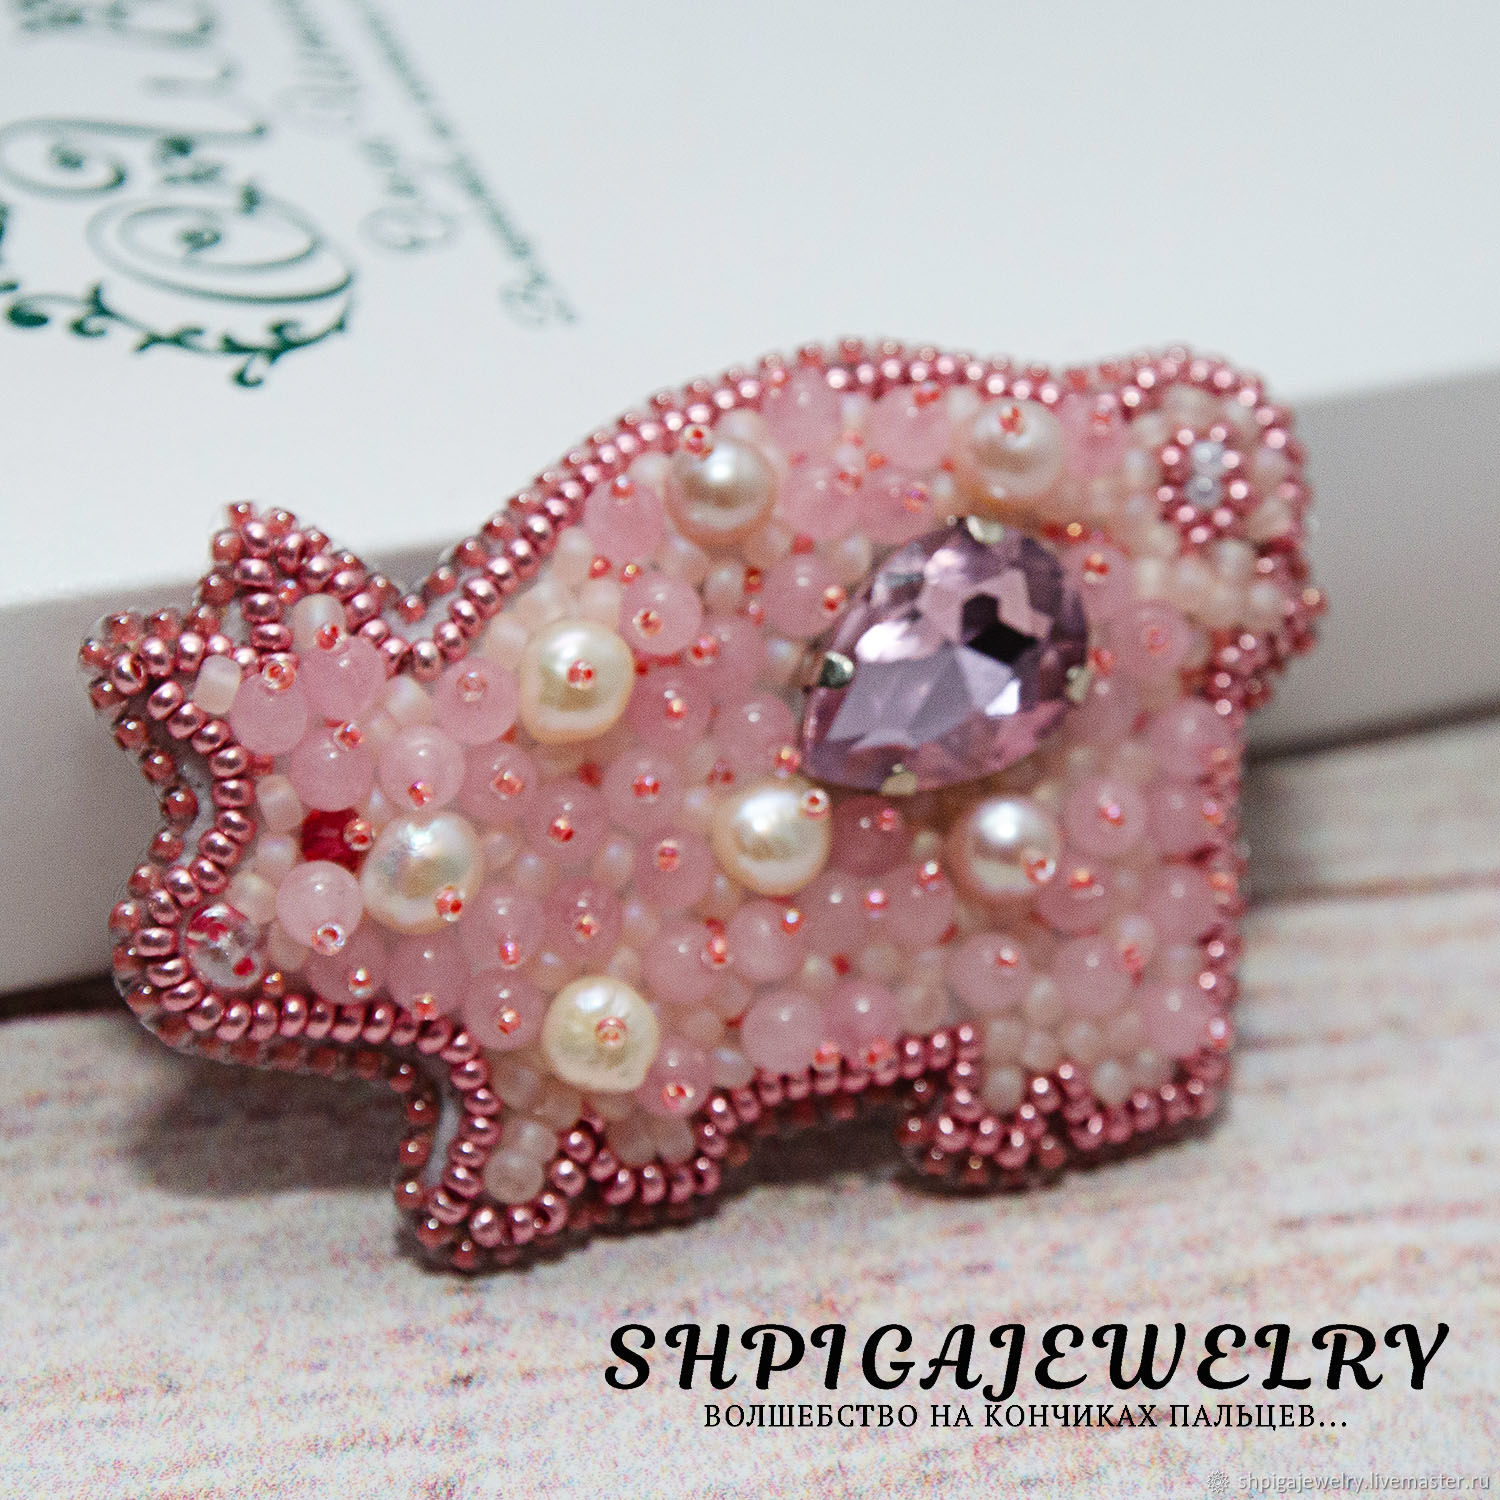 Embroidered brooch with rose quartz and pearls, the symbol of the year `Pig`